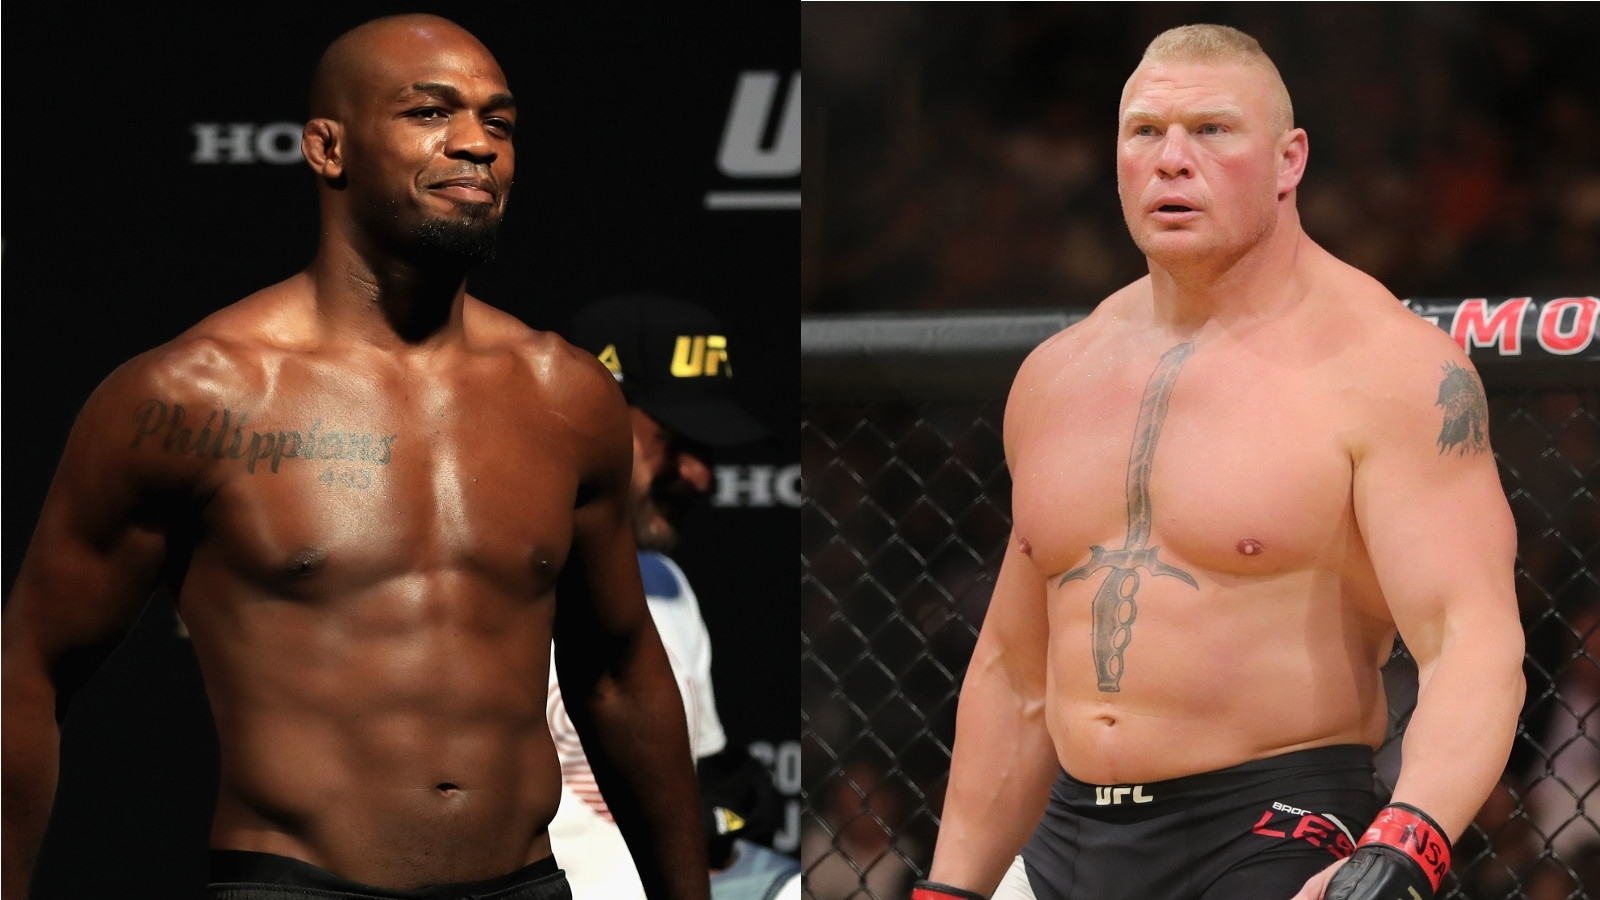 Jon Jones Brock Lesnar UFC